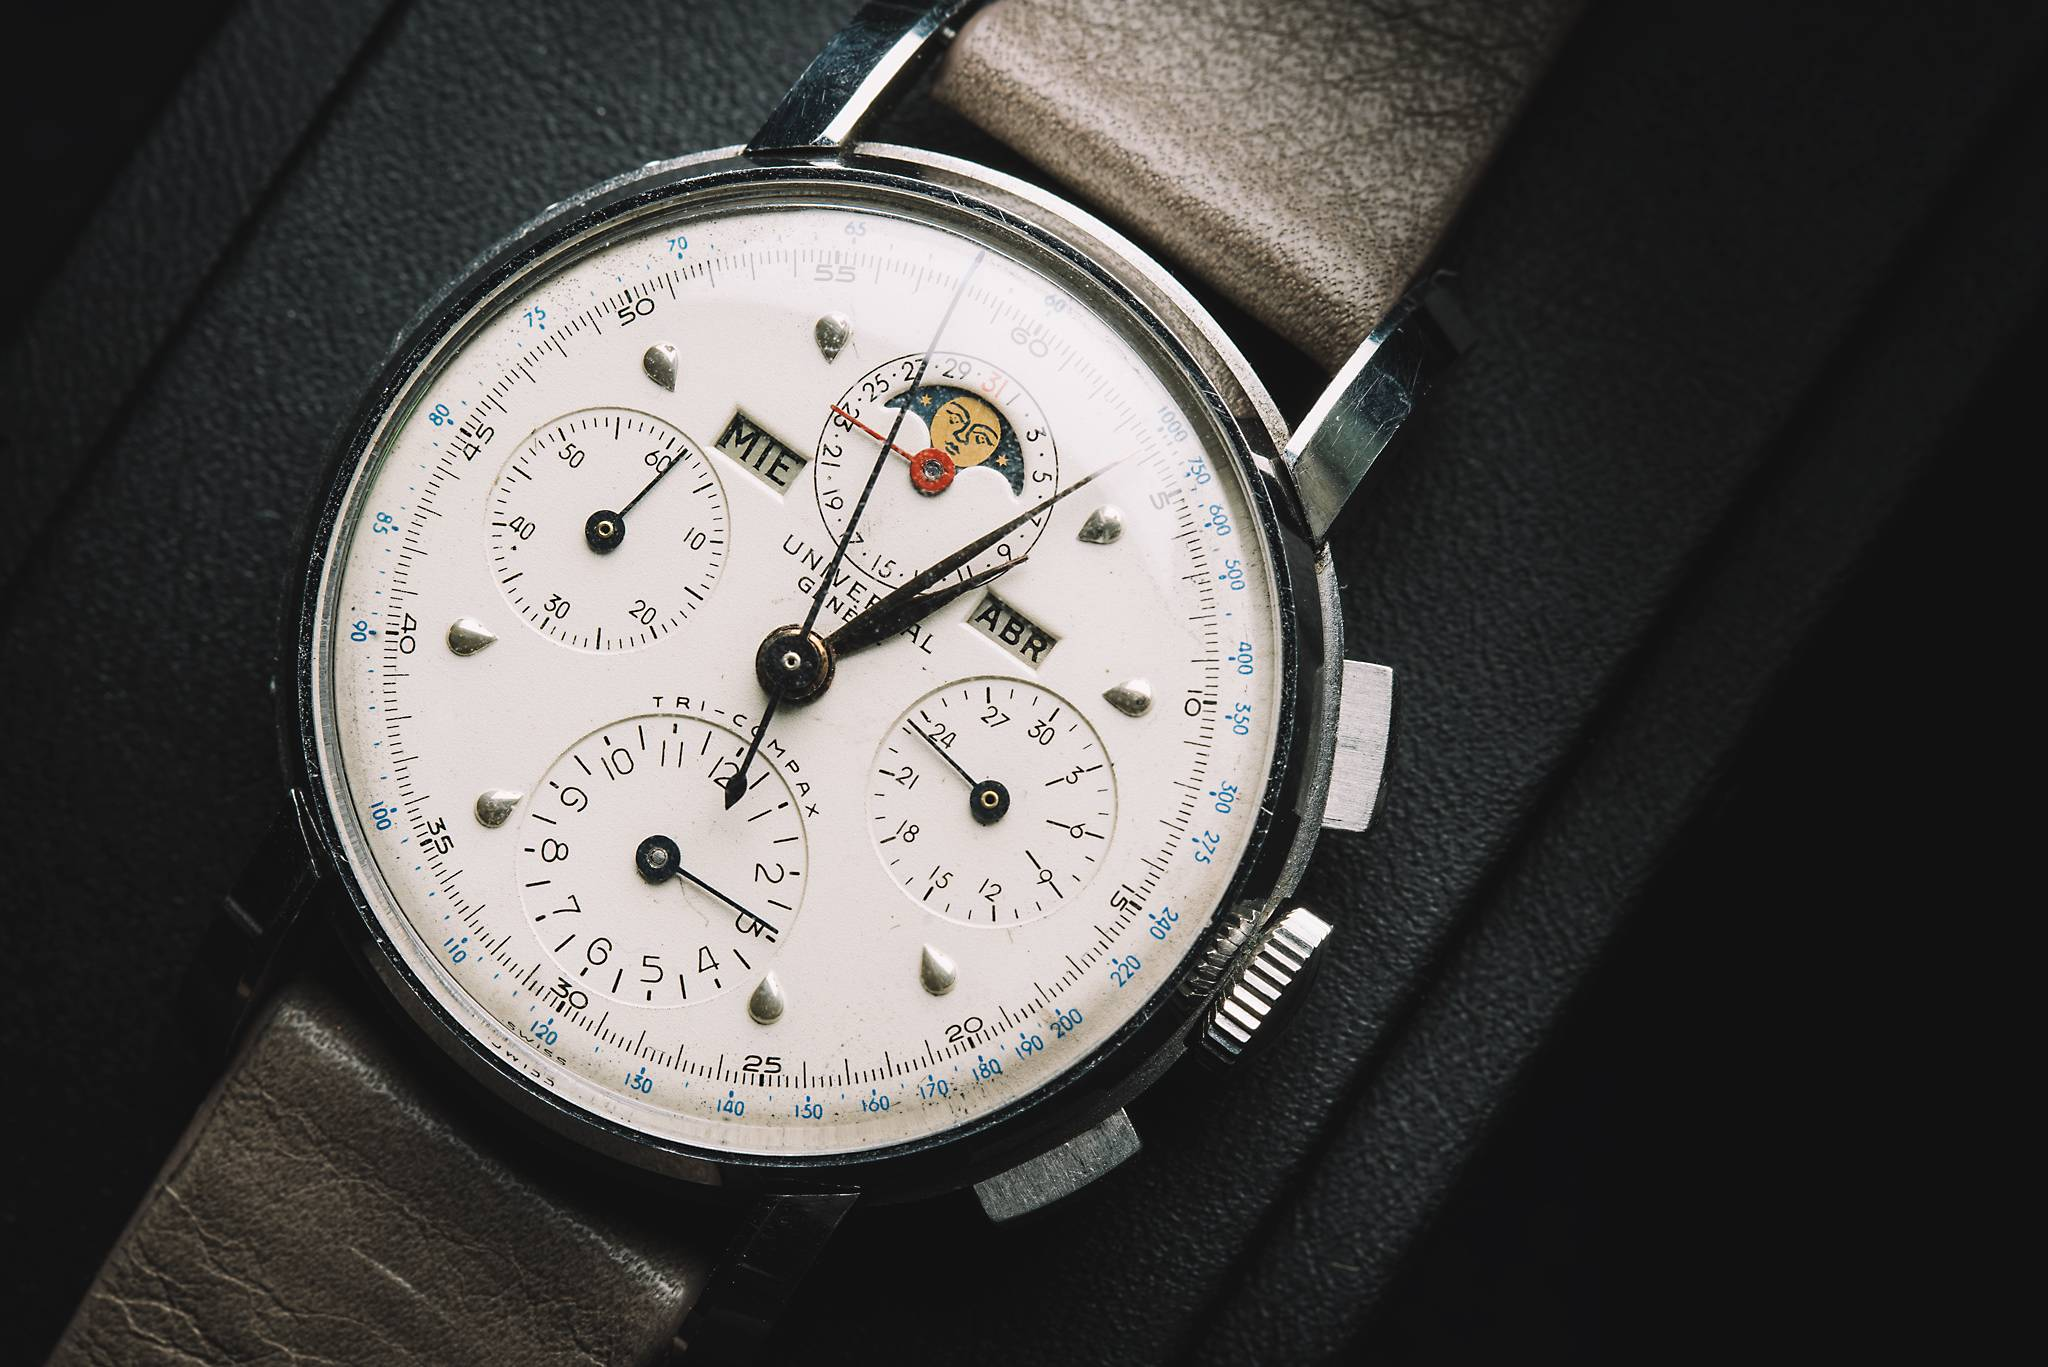 Universal Tri-Compax, 22541, Stainless steel, 1945 Dial